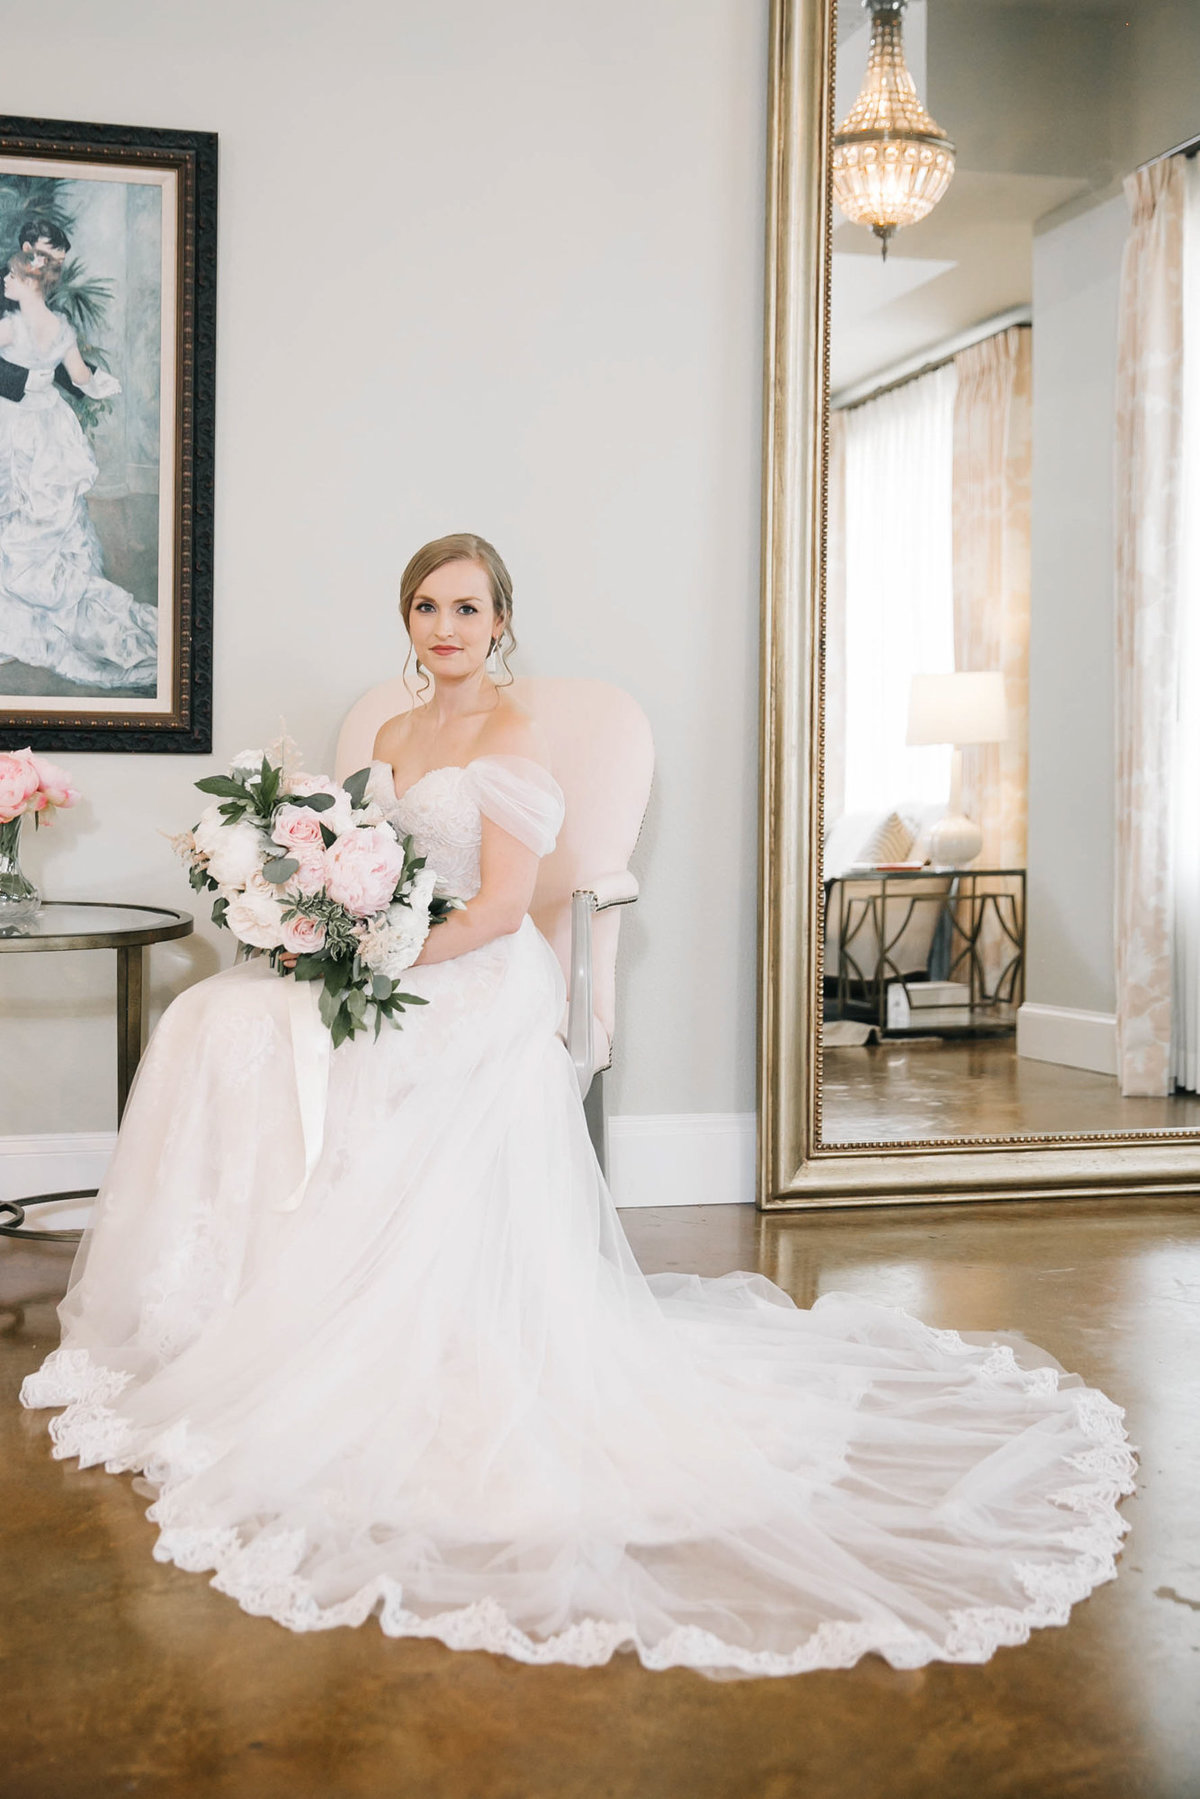 Aristide-Flower-Mound-wedding-by-Dallas-photographer-Julia-Sharapova-175